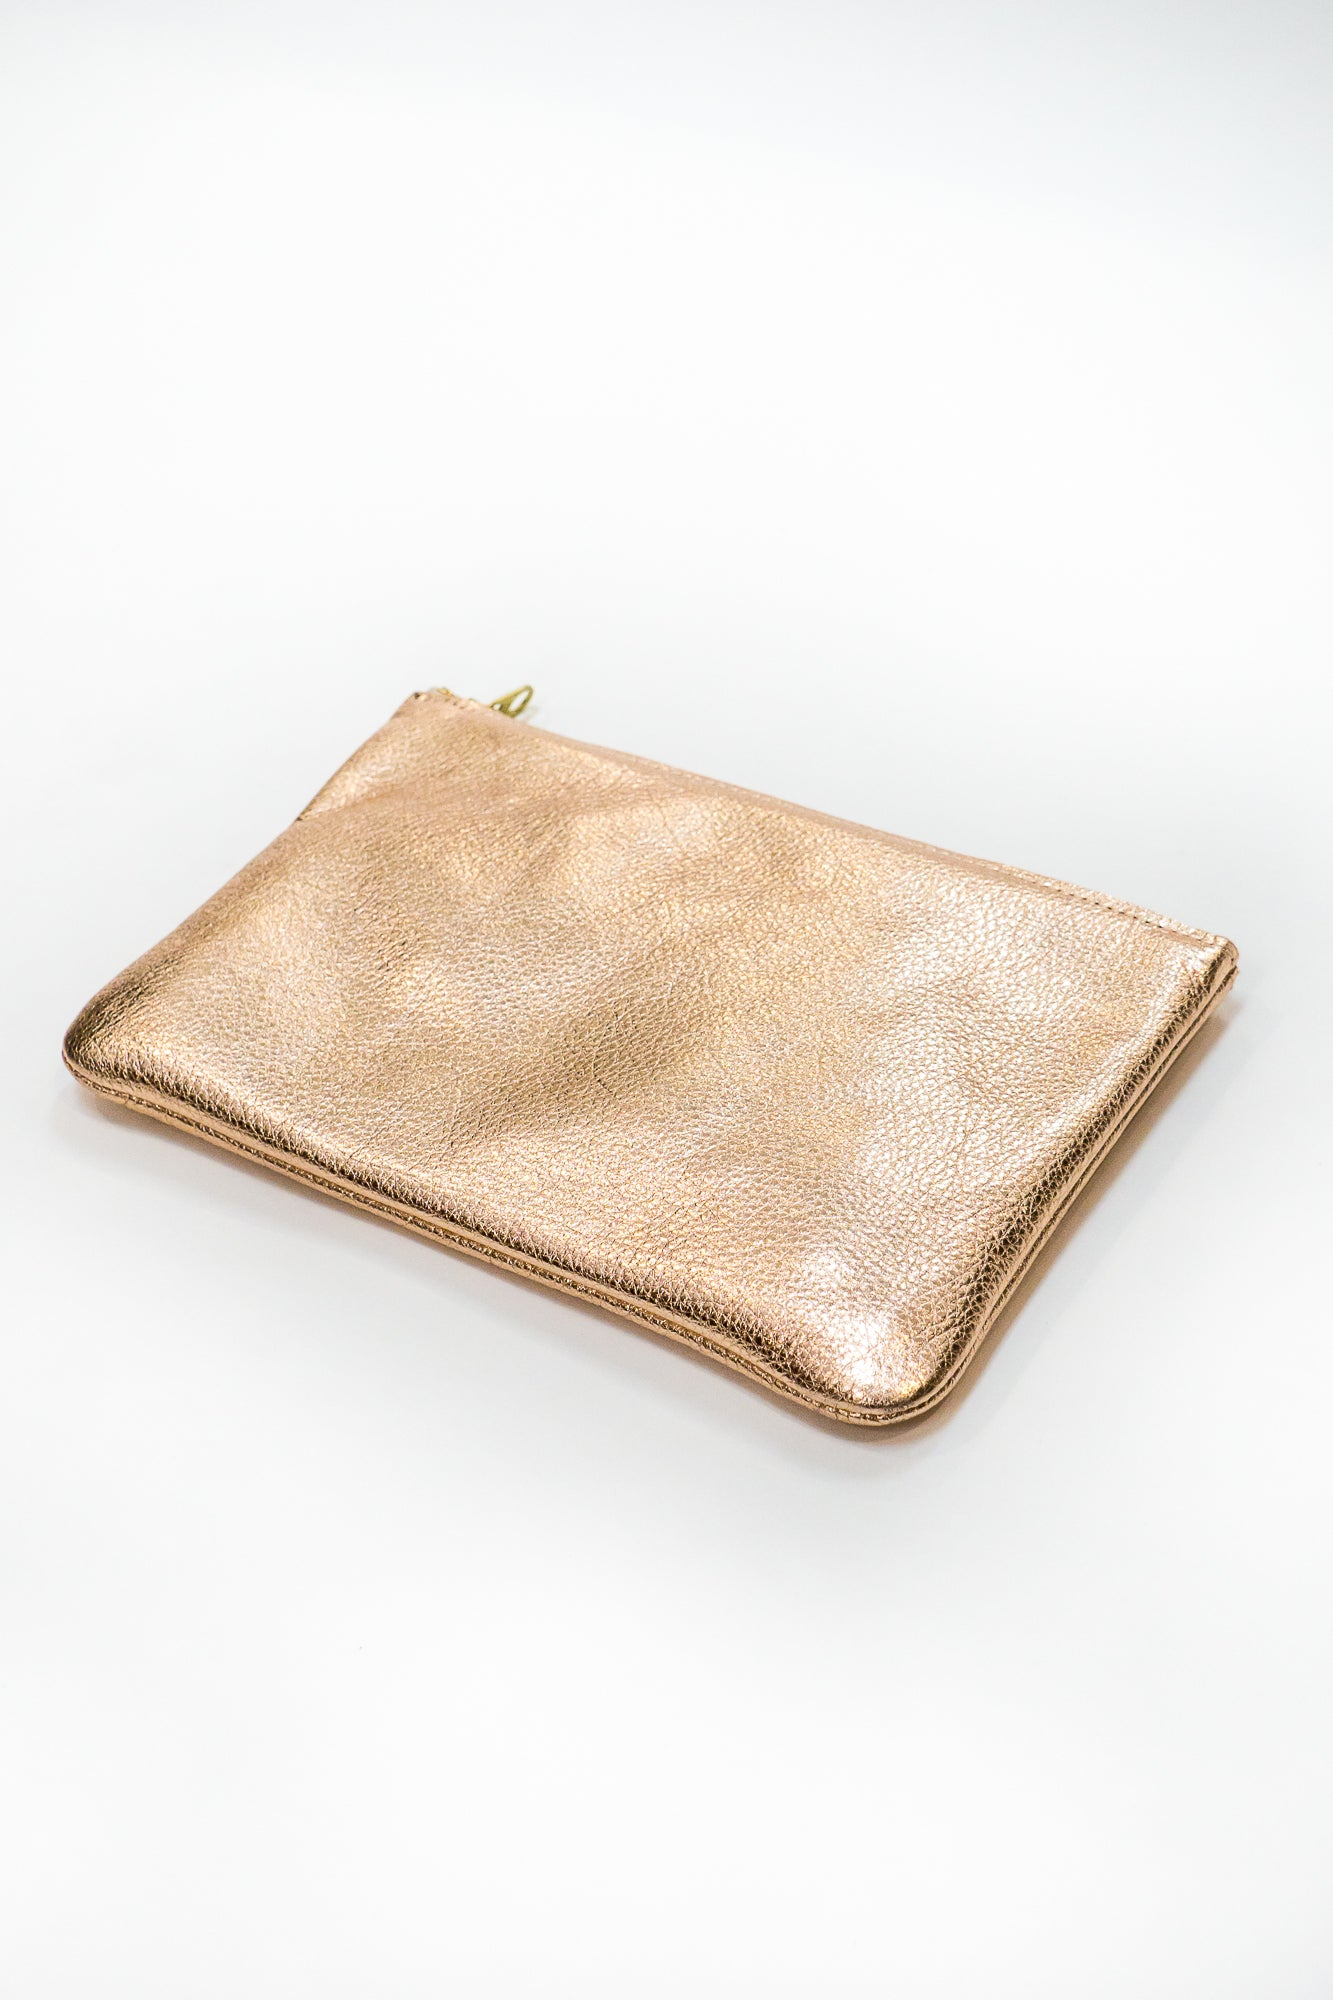 Jane Medium Clutch - The Canyon